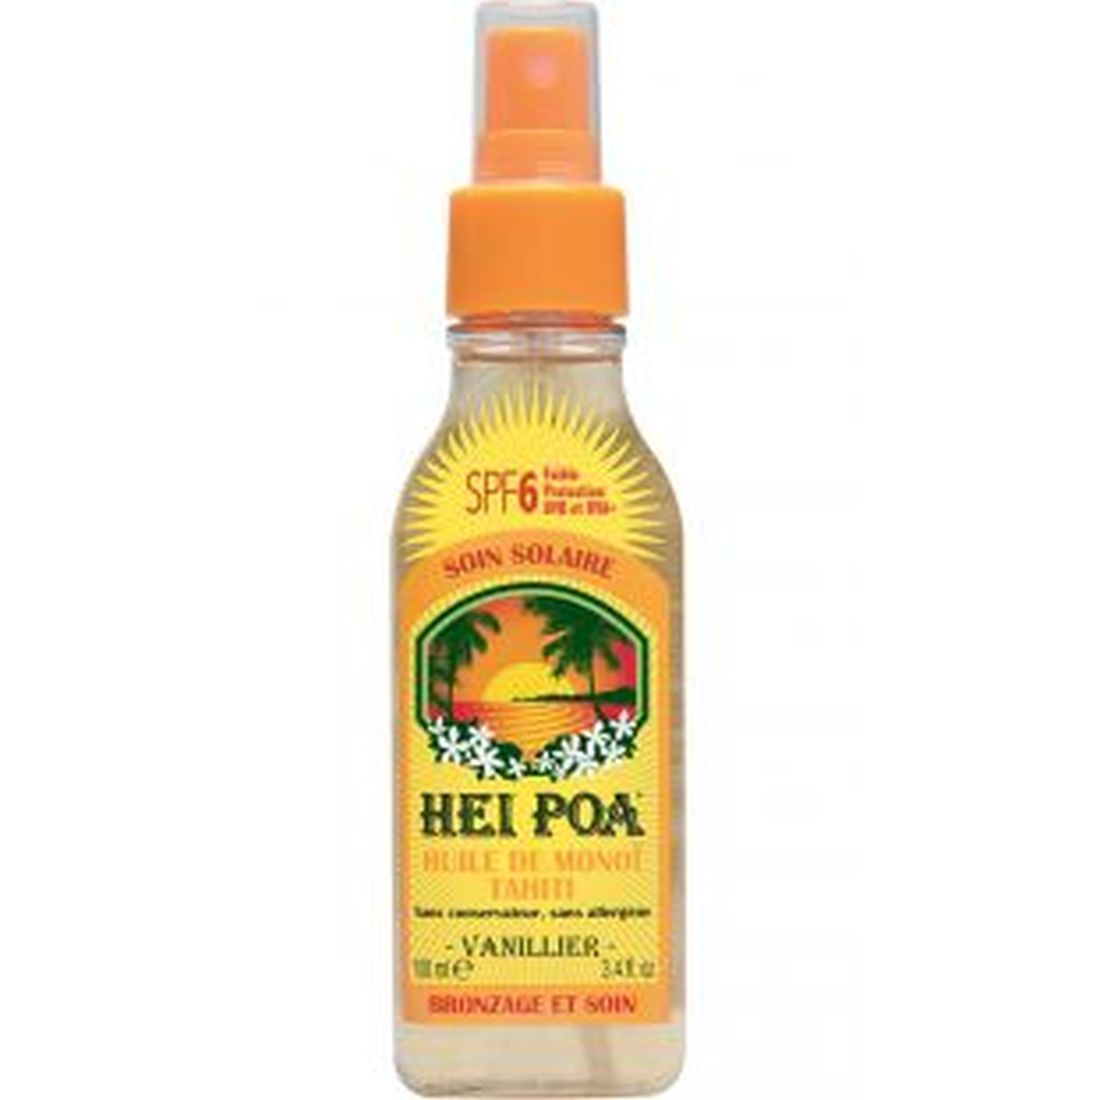 Hei Poa Tahiti Monoi Oil Vanilla Spray SPF6 100ml